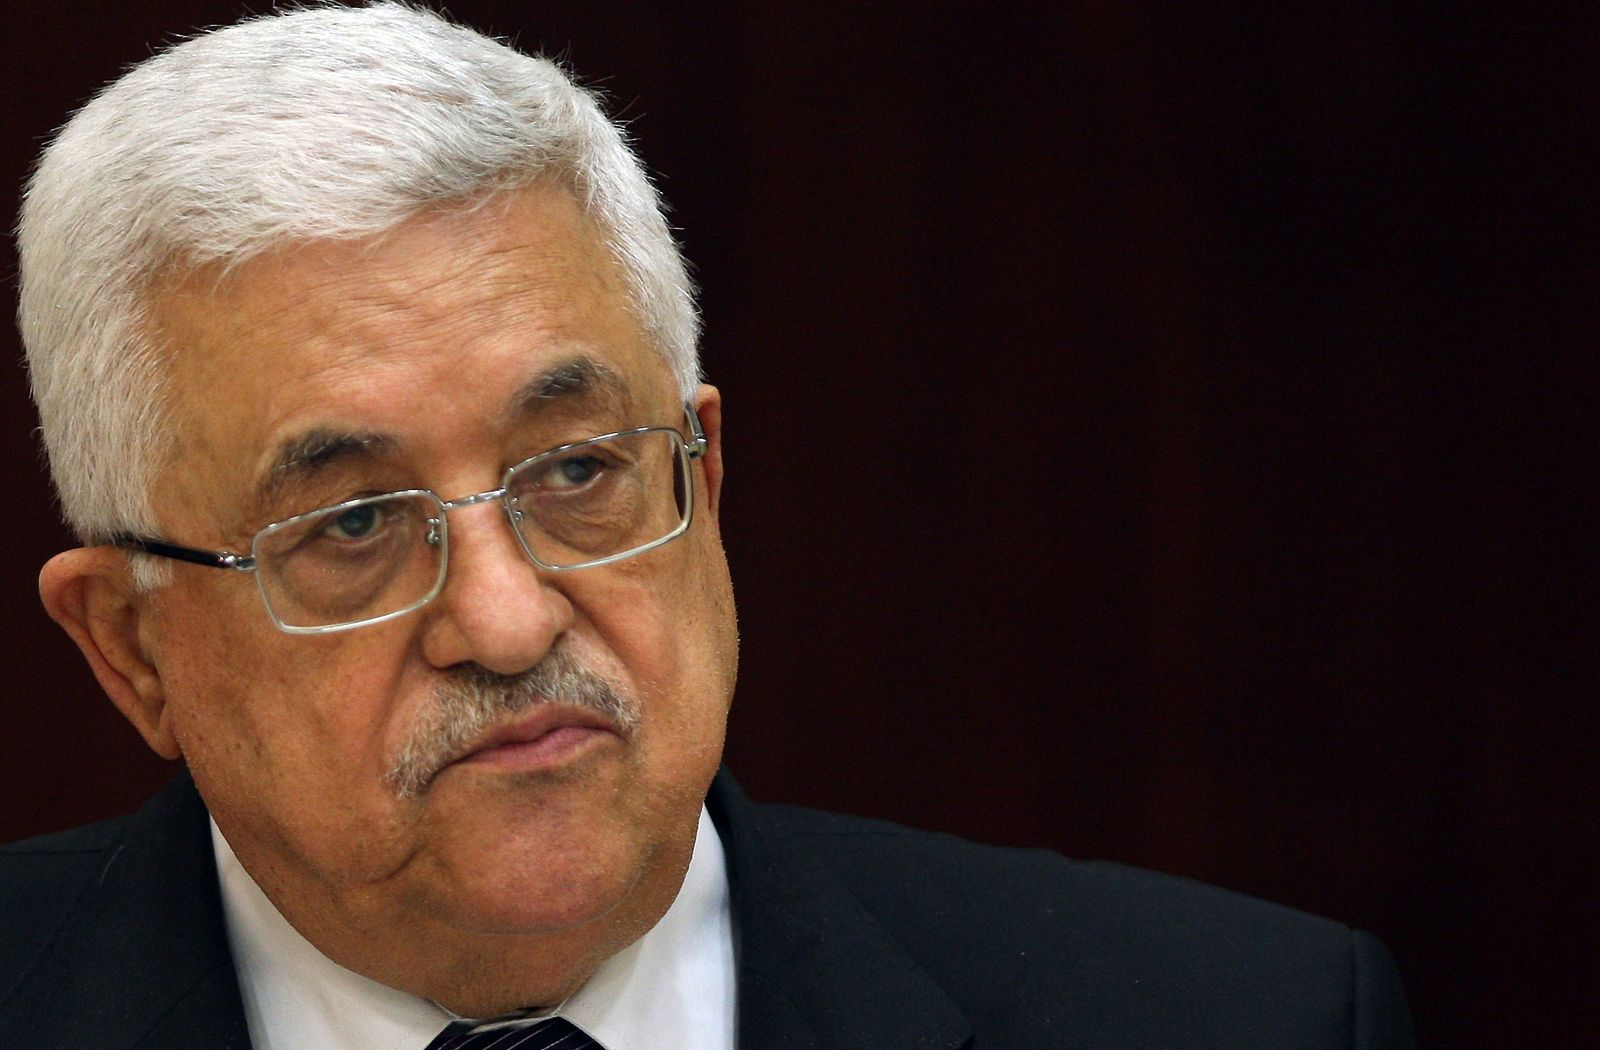 FILES-ISRAEL-PALESTINIAN-PEACE-US-OBAMA-ABBAS